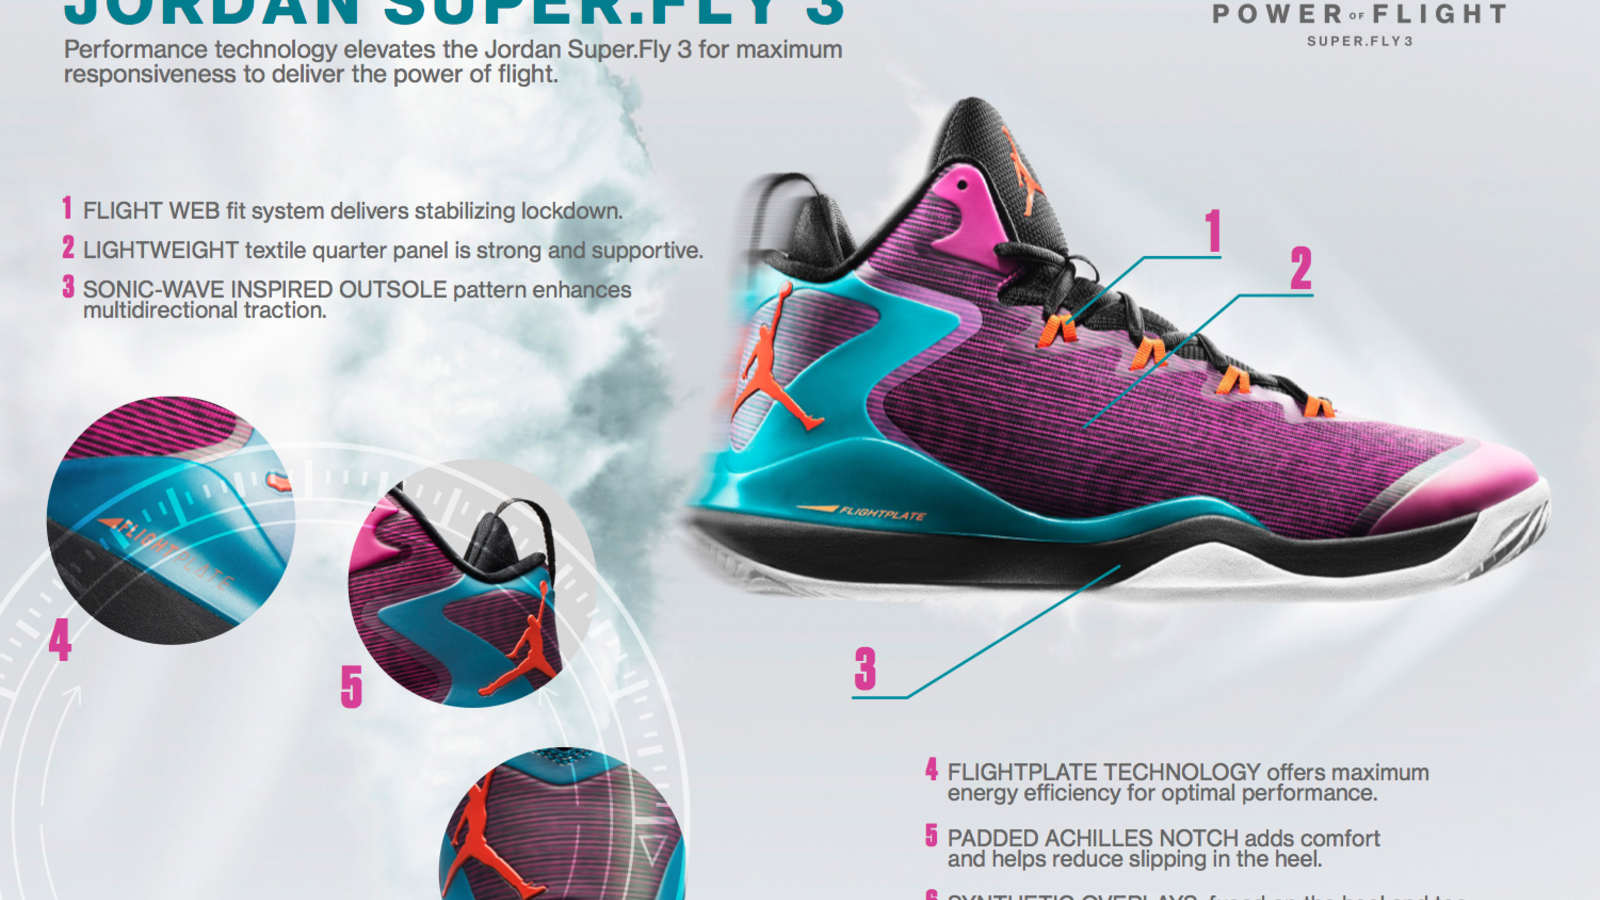 Jordan Super.Fly 3 Tech Sheet